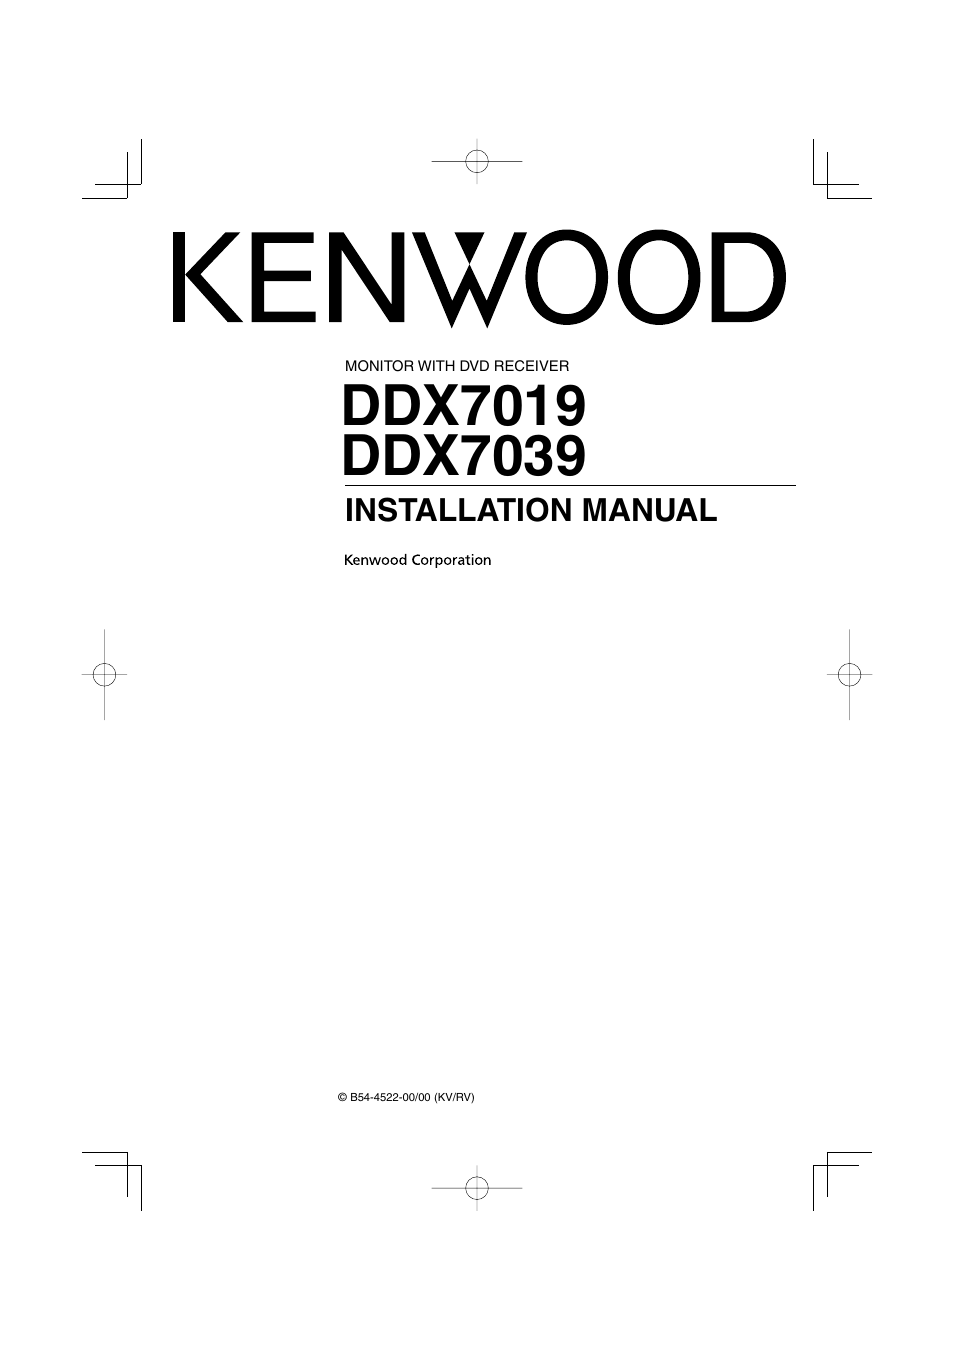 kenwood ddx7019 user manual